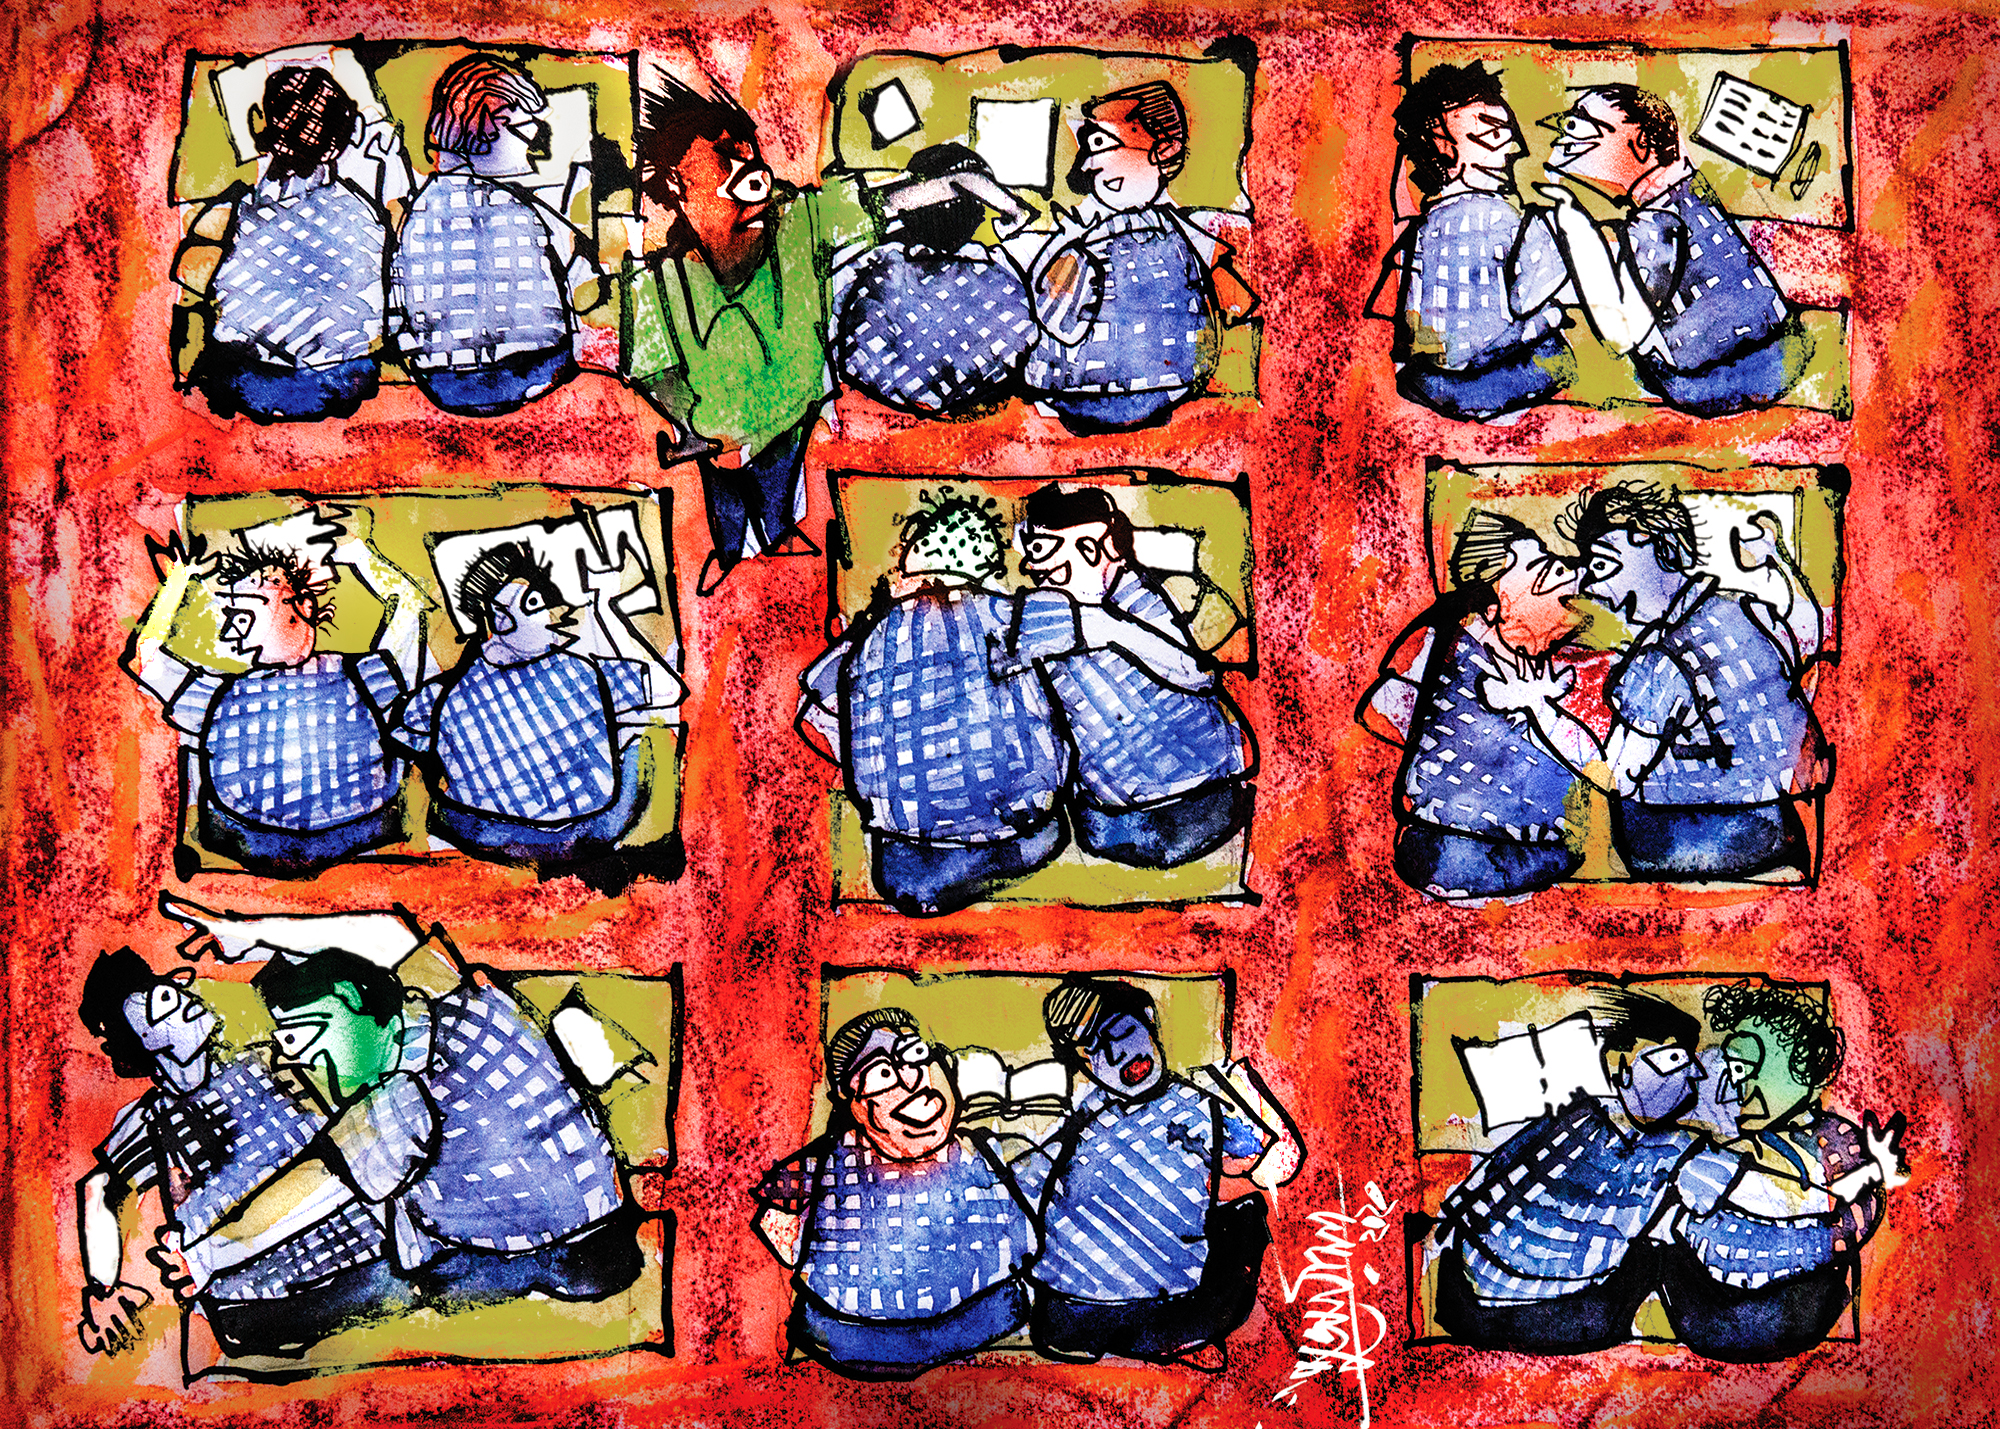 Illustration for cover story by Suvamoy Mitra